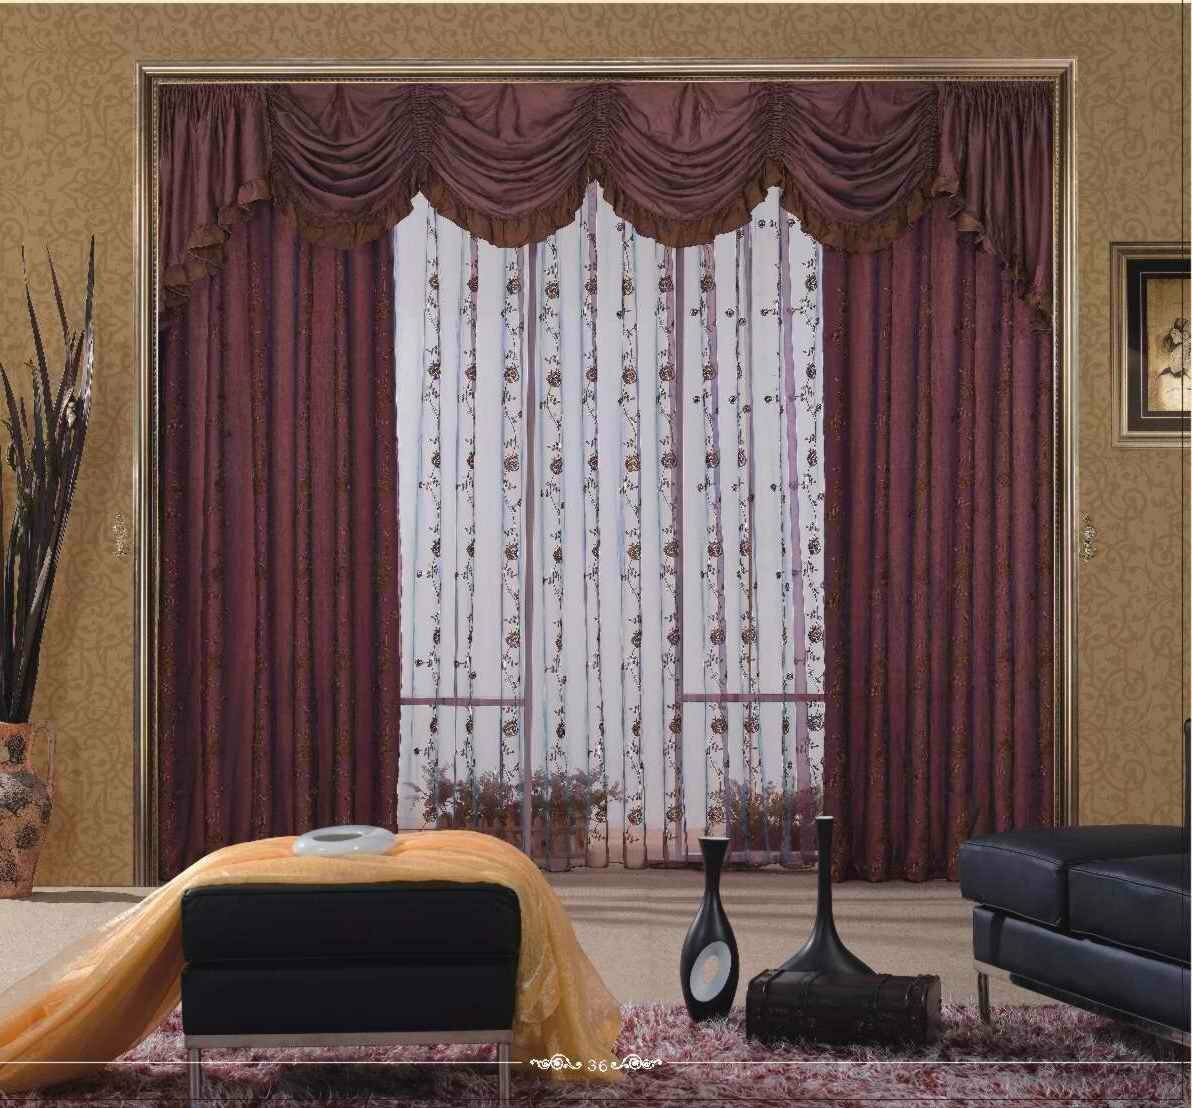 Curtain Cute Living Room Valances For Your Home Decorating Ideas  Whereishemsworthcom